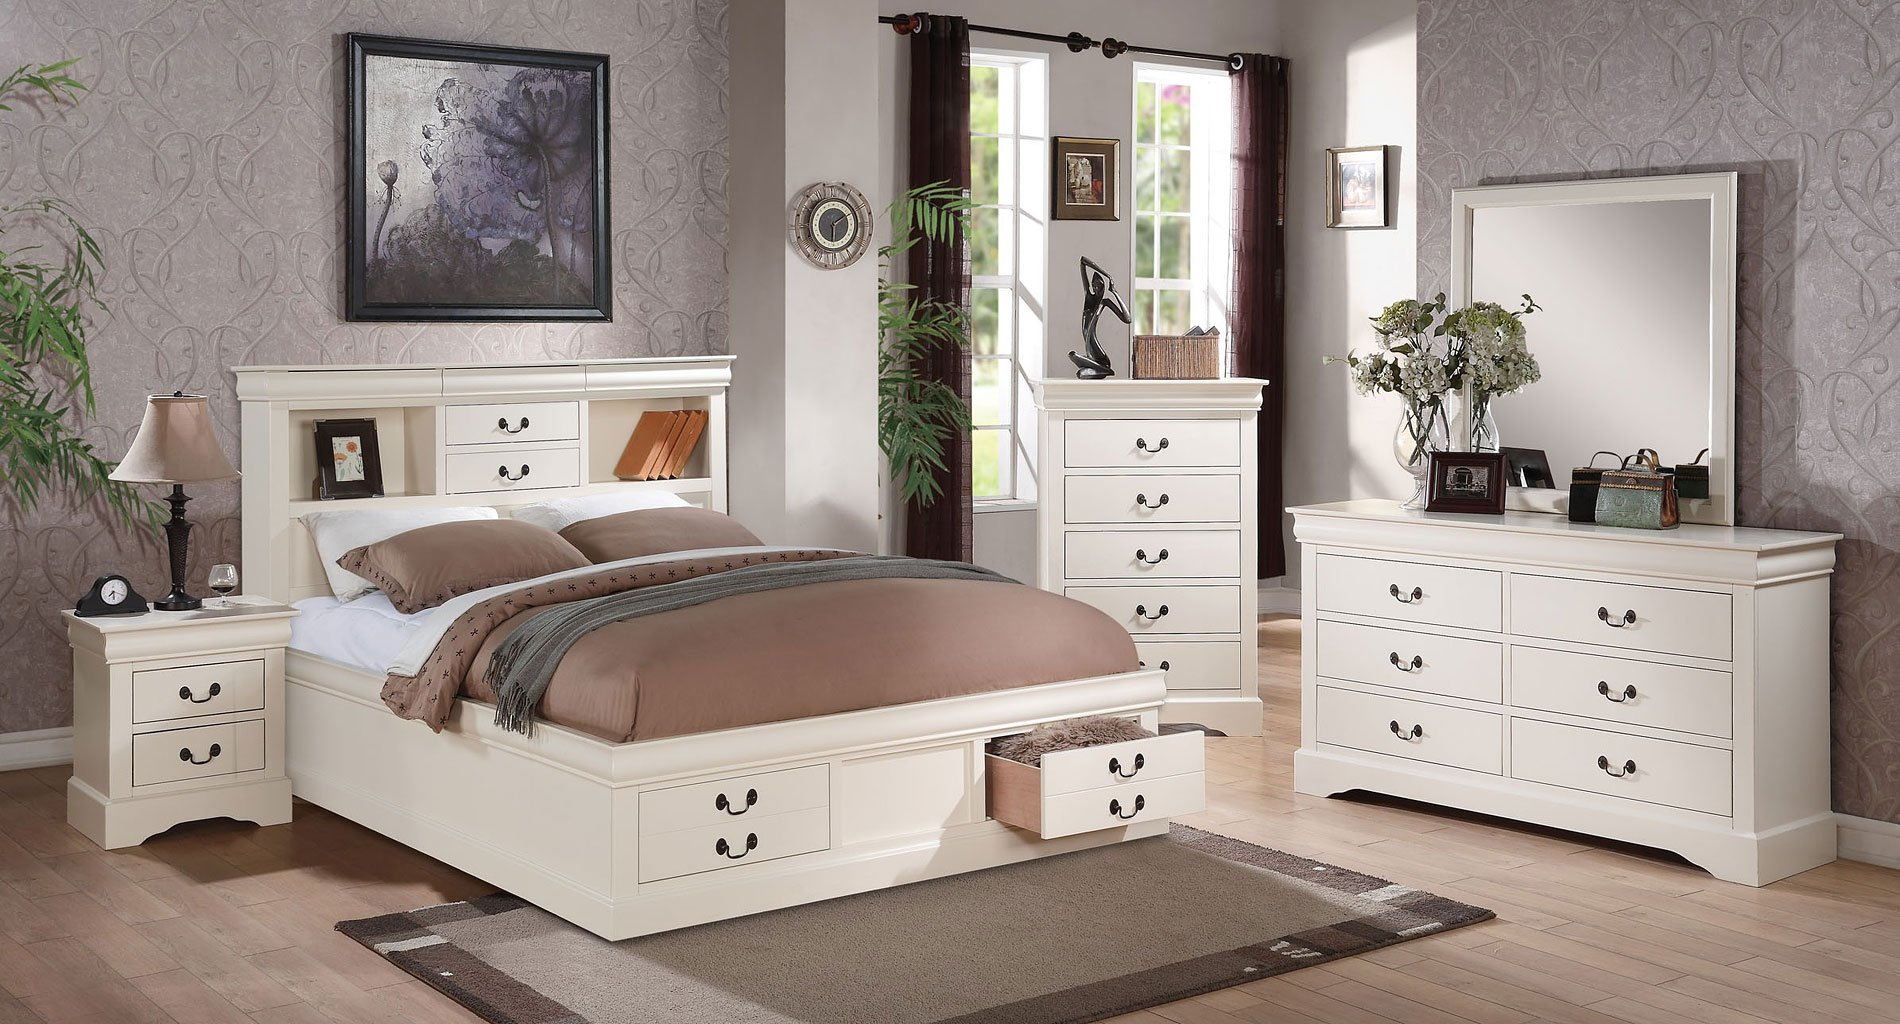 louis philippe iii bookcase bedroom set white acme 15928 | 24490q br set 1